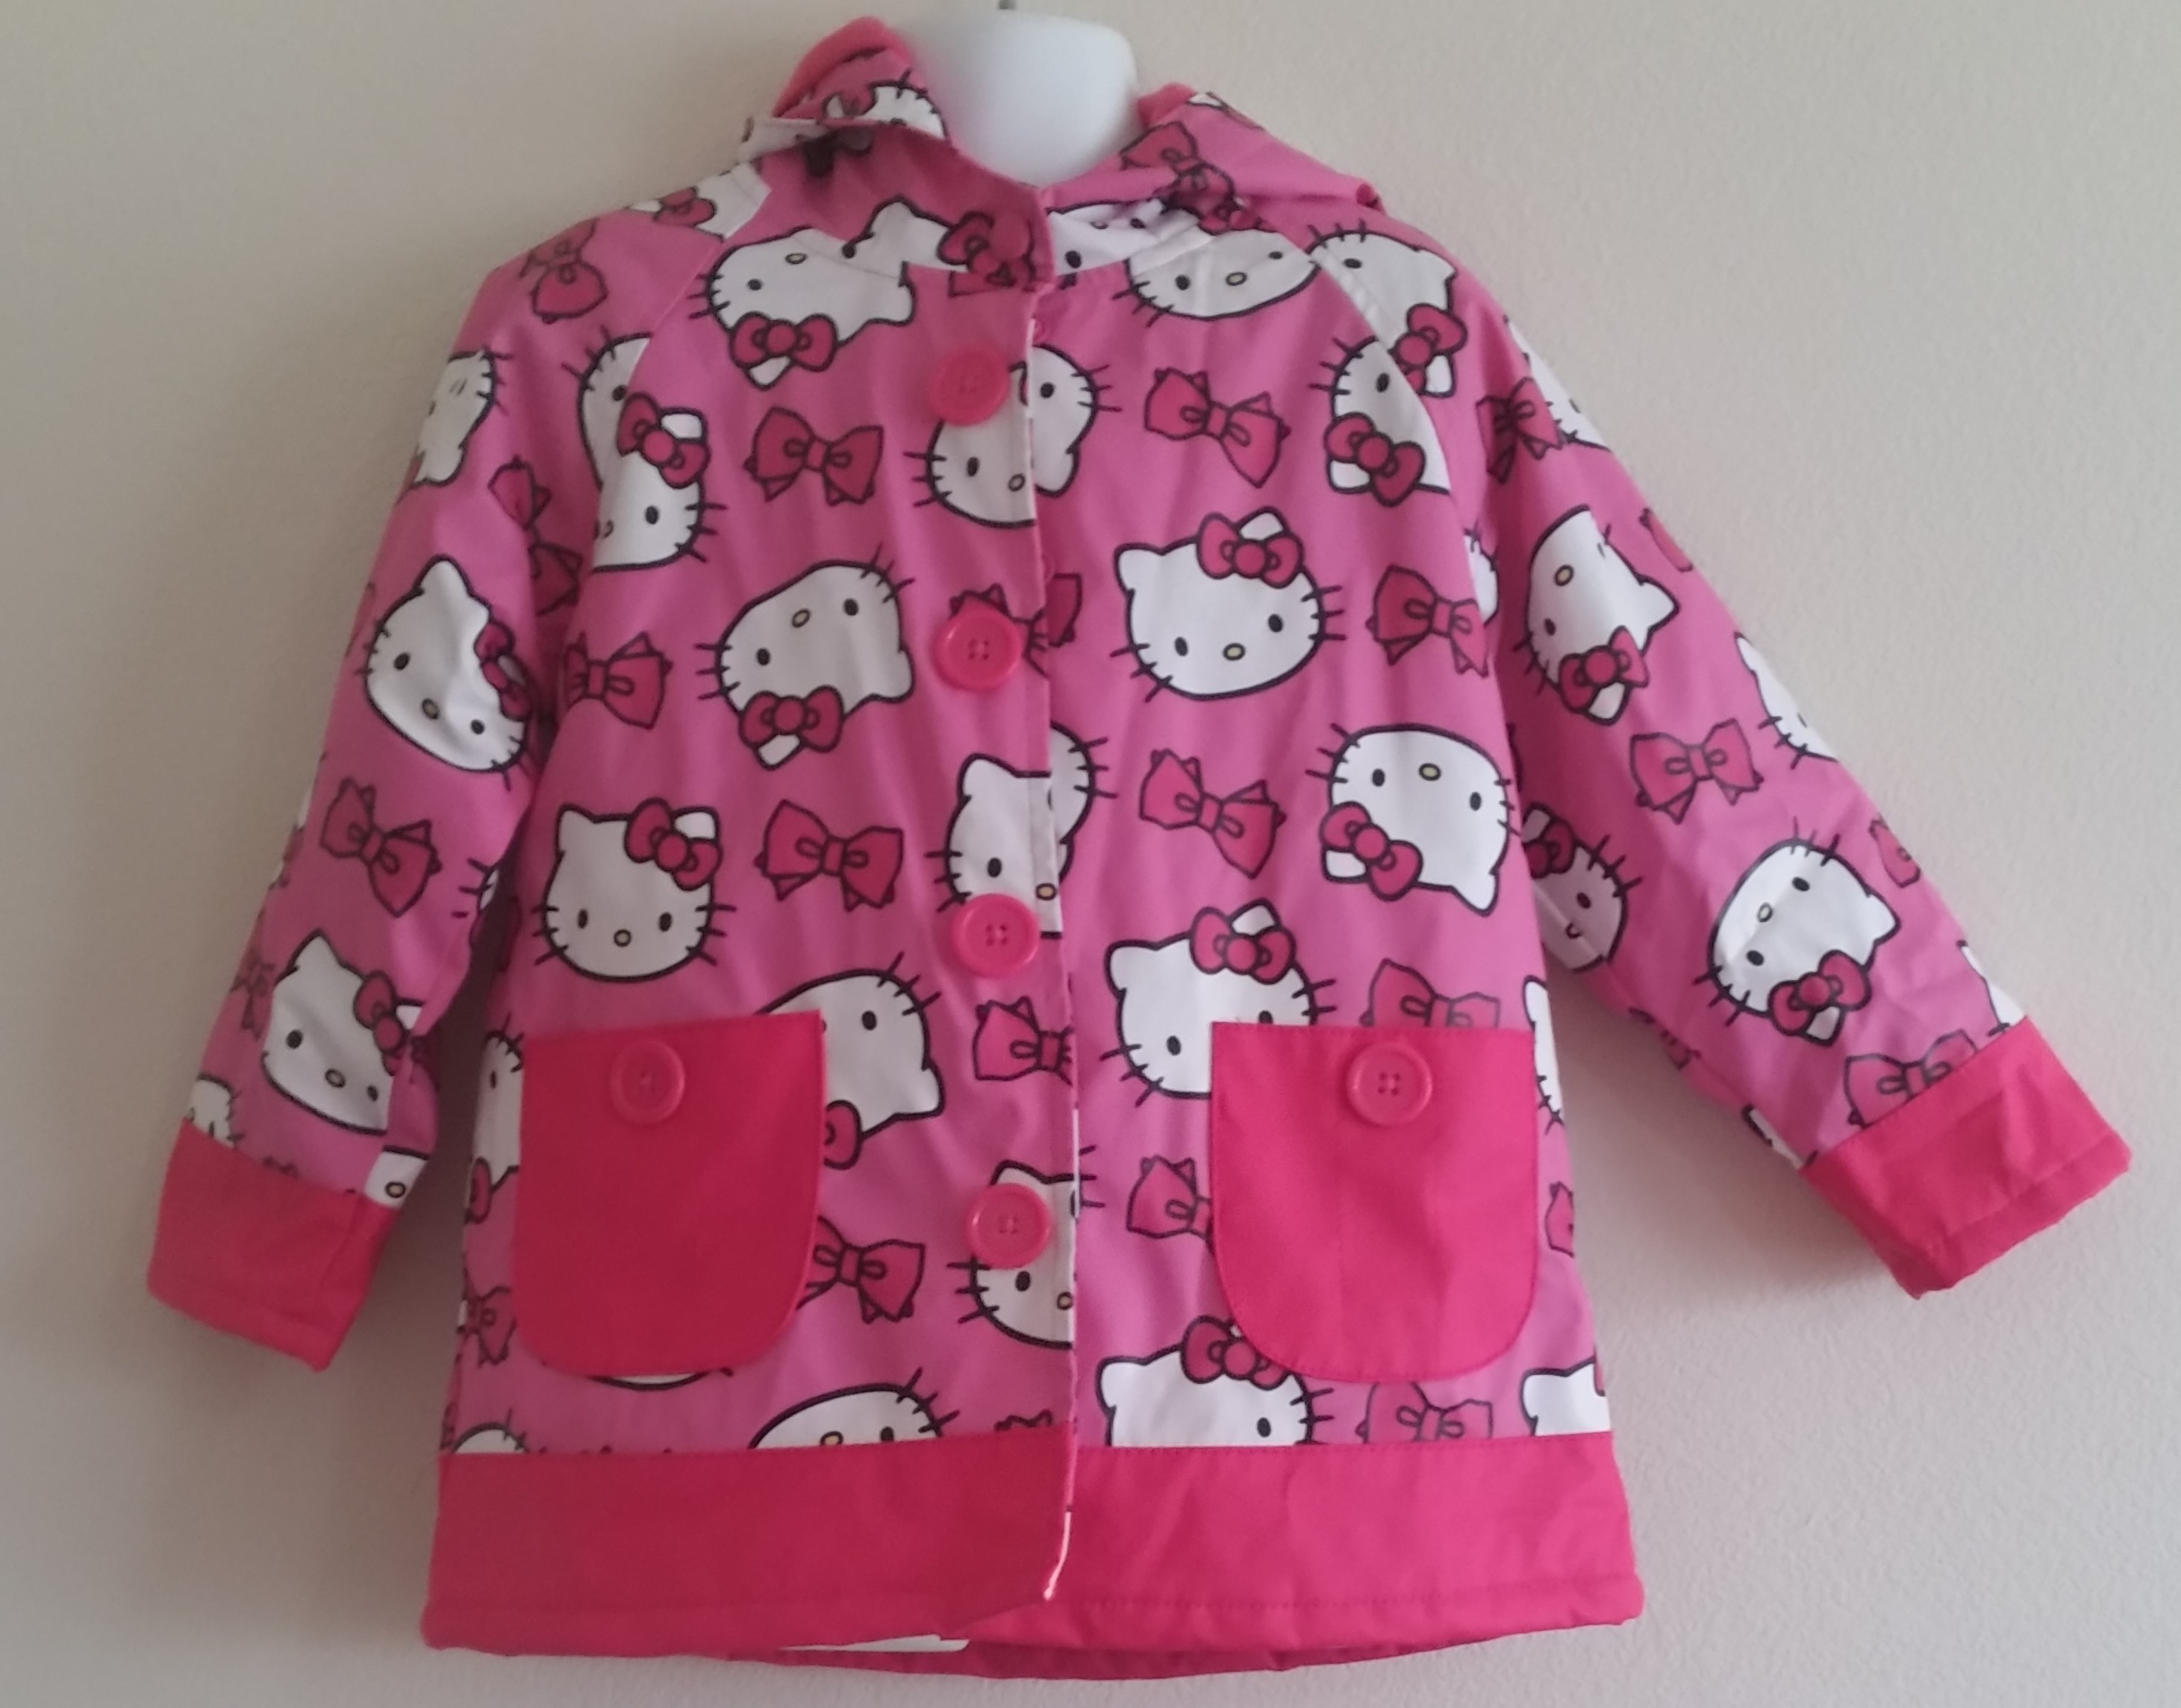 081700534 Pre-Owned Kids Size 3T - $15